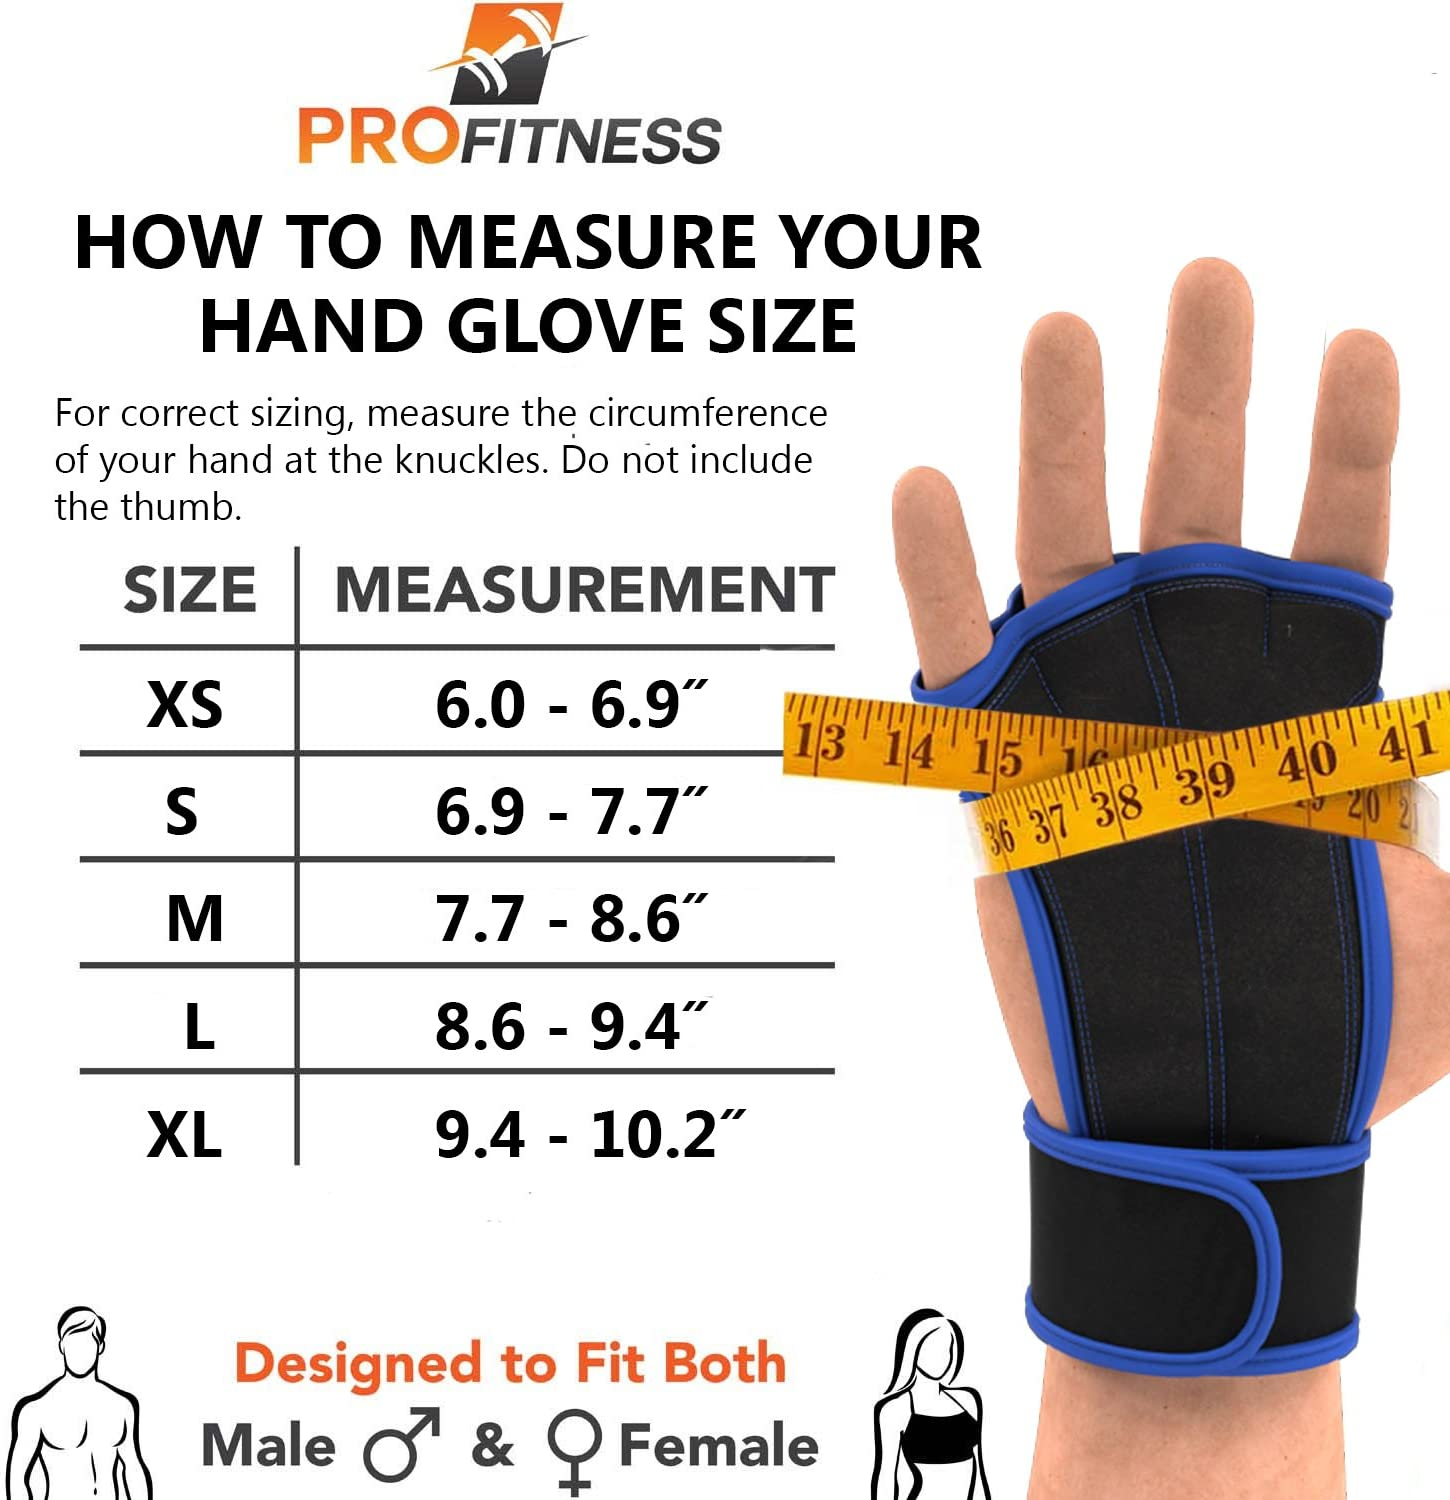 Protection from Injury Split Leather with Silicone Padding for Strong Grip Weightlifting ProFitness Ventilated Cross Training Gloves with Wrist Support Powerlifting /& WOD for Gym Workout